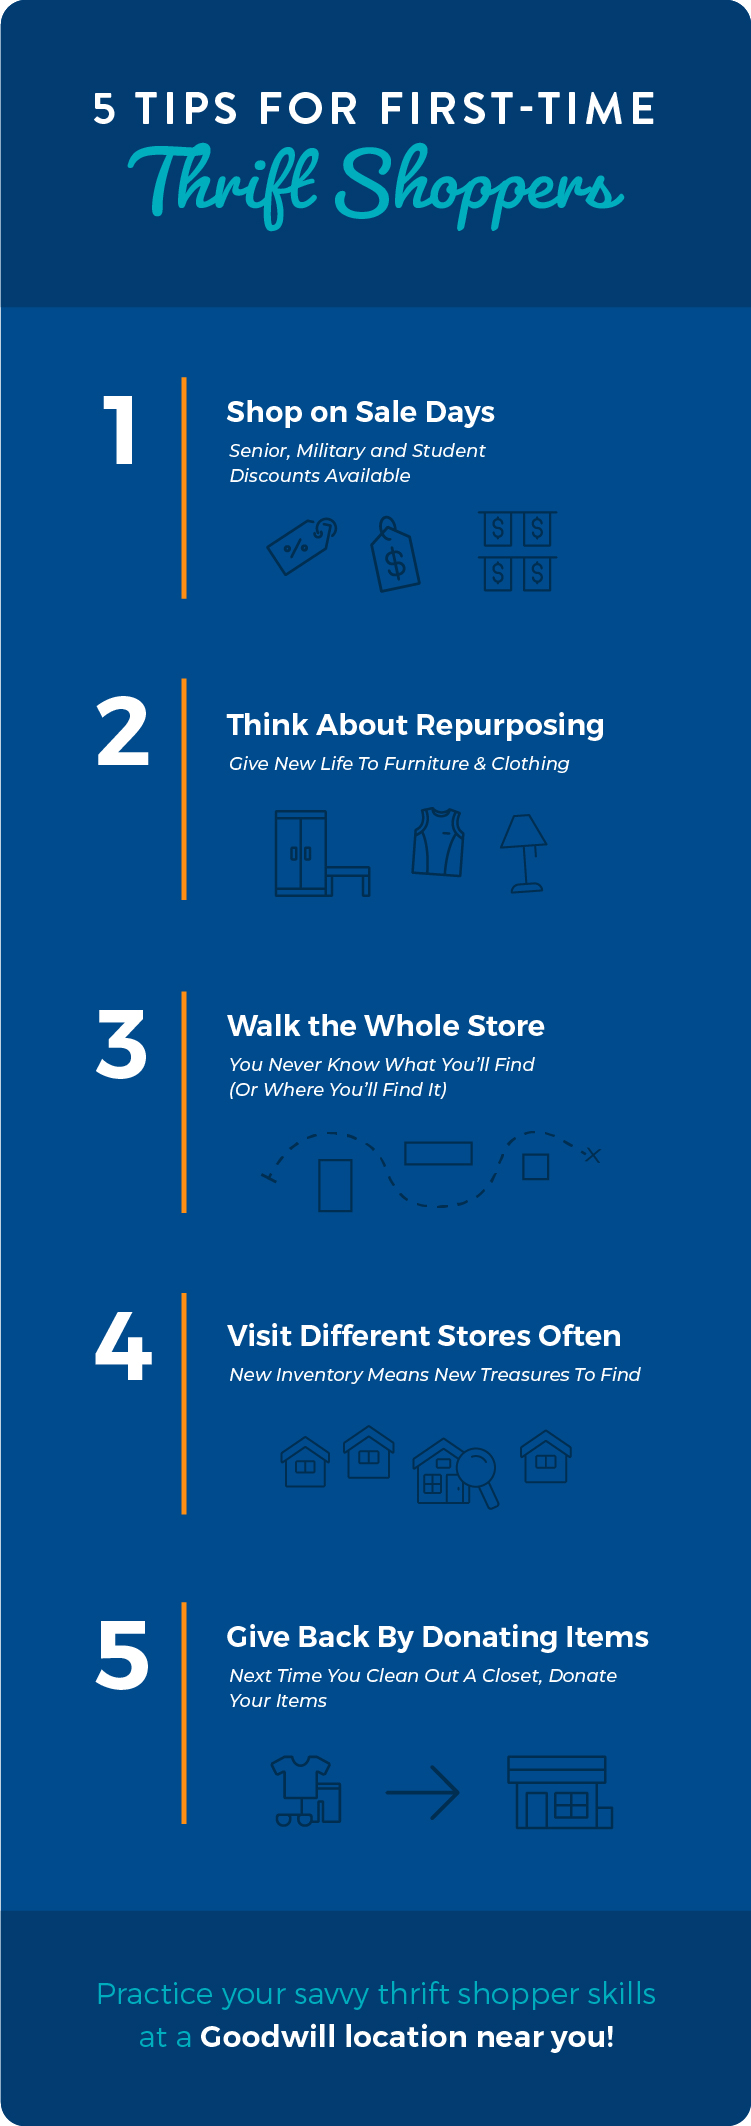 Goodwill Thrift Store Shopping Tips for First Time Thrifters